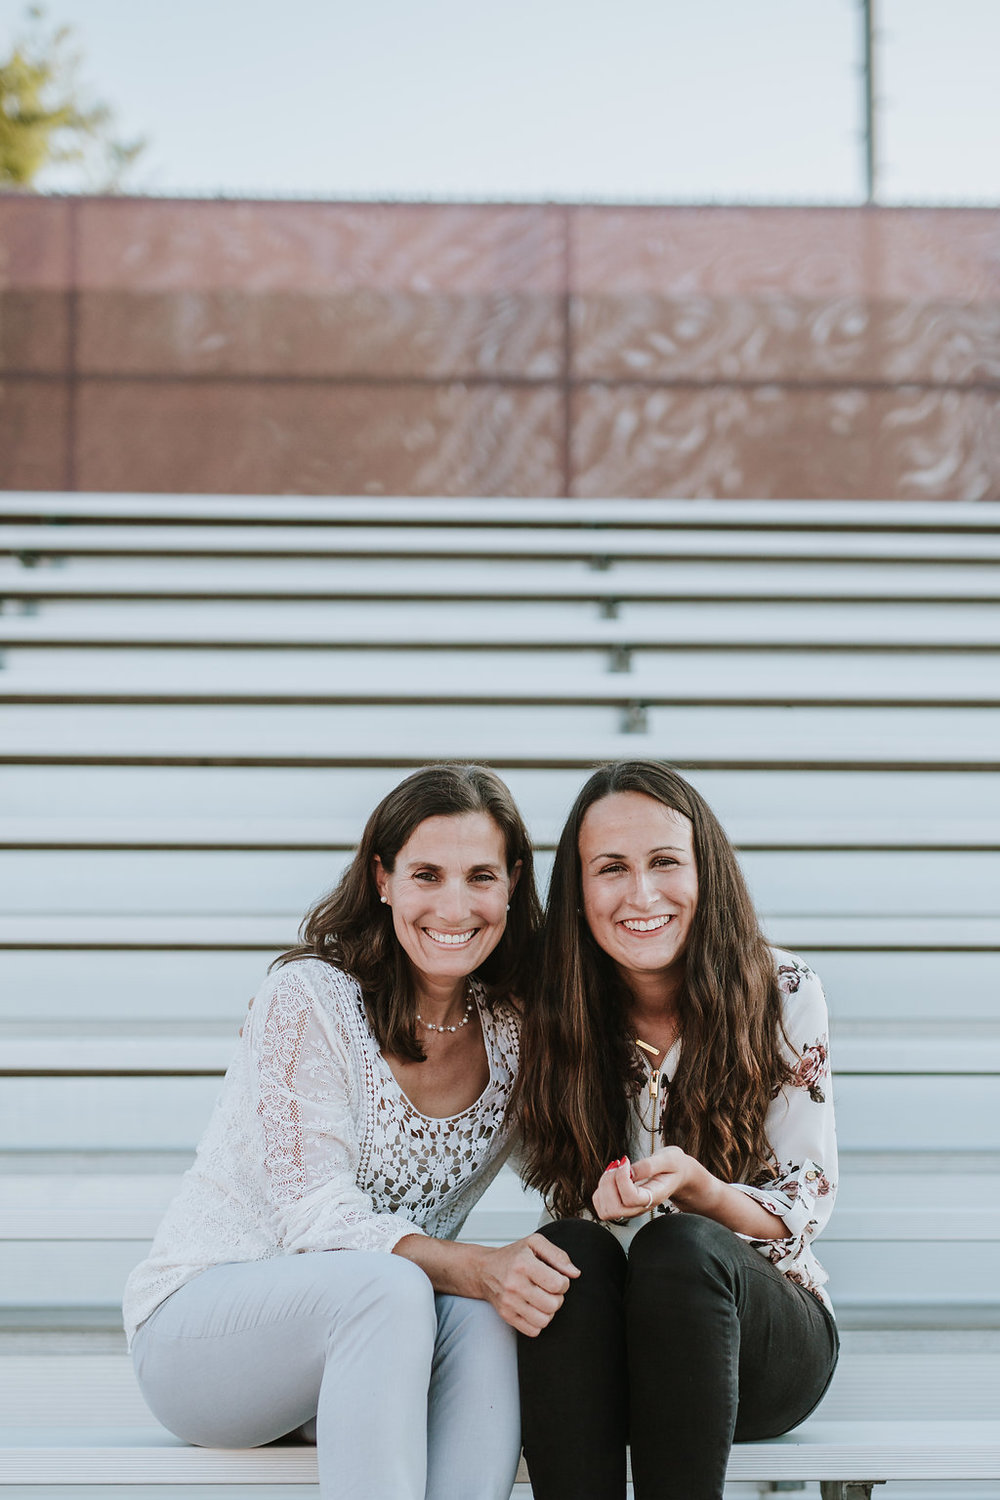 Katie Anthony invited me to church where I was surprised by how different First Baptist Starkville was from the church back home in Germany. -